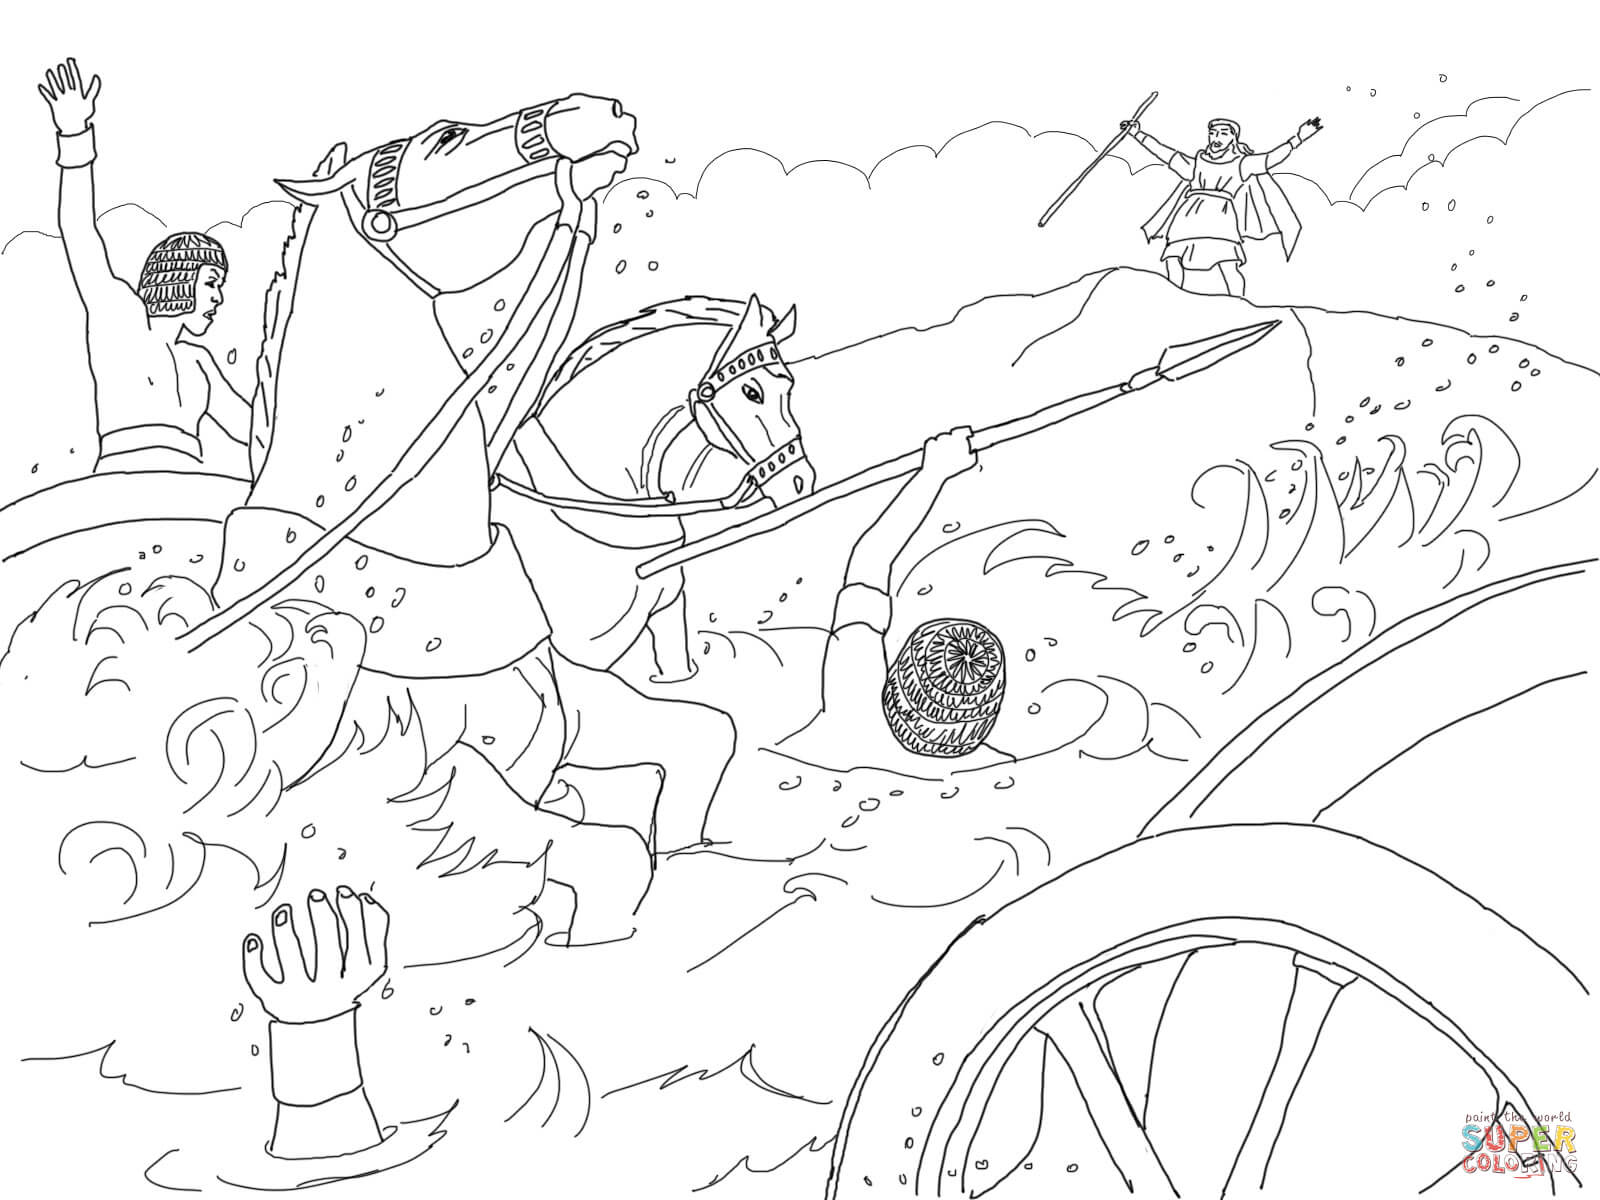 free israel coloring pages for children | Coloring Pages Crossing The Red Sea - Coloring Home